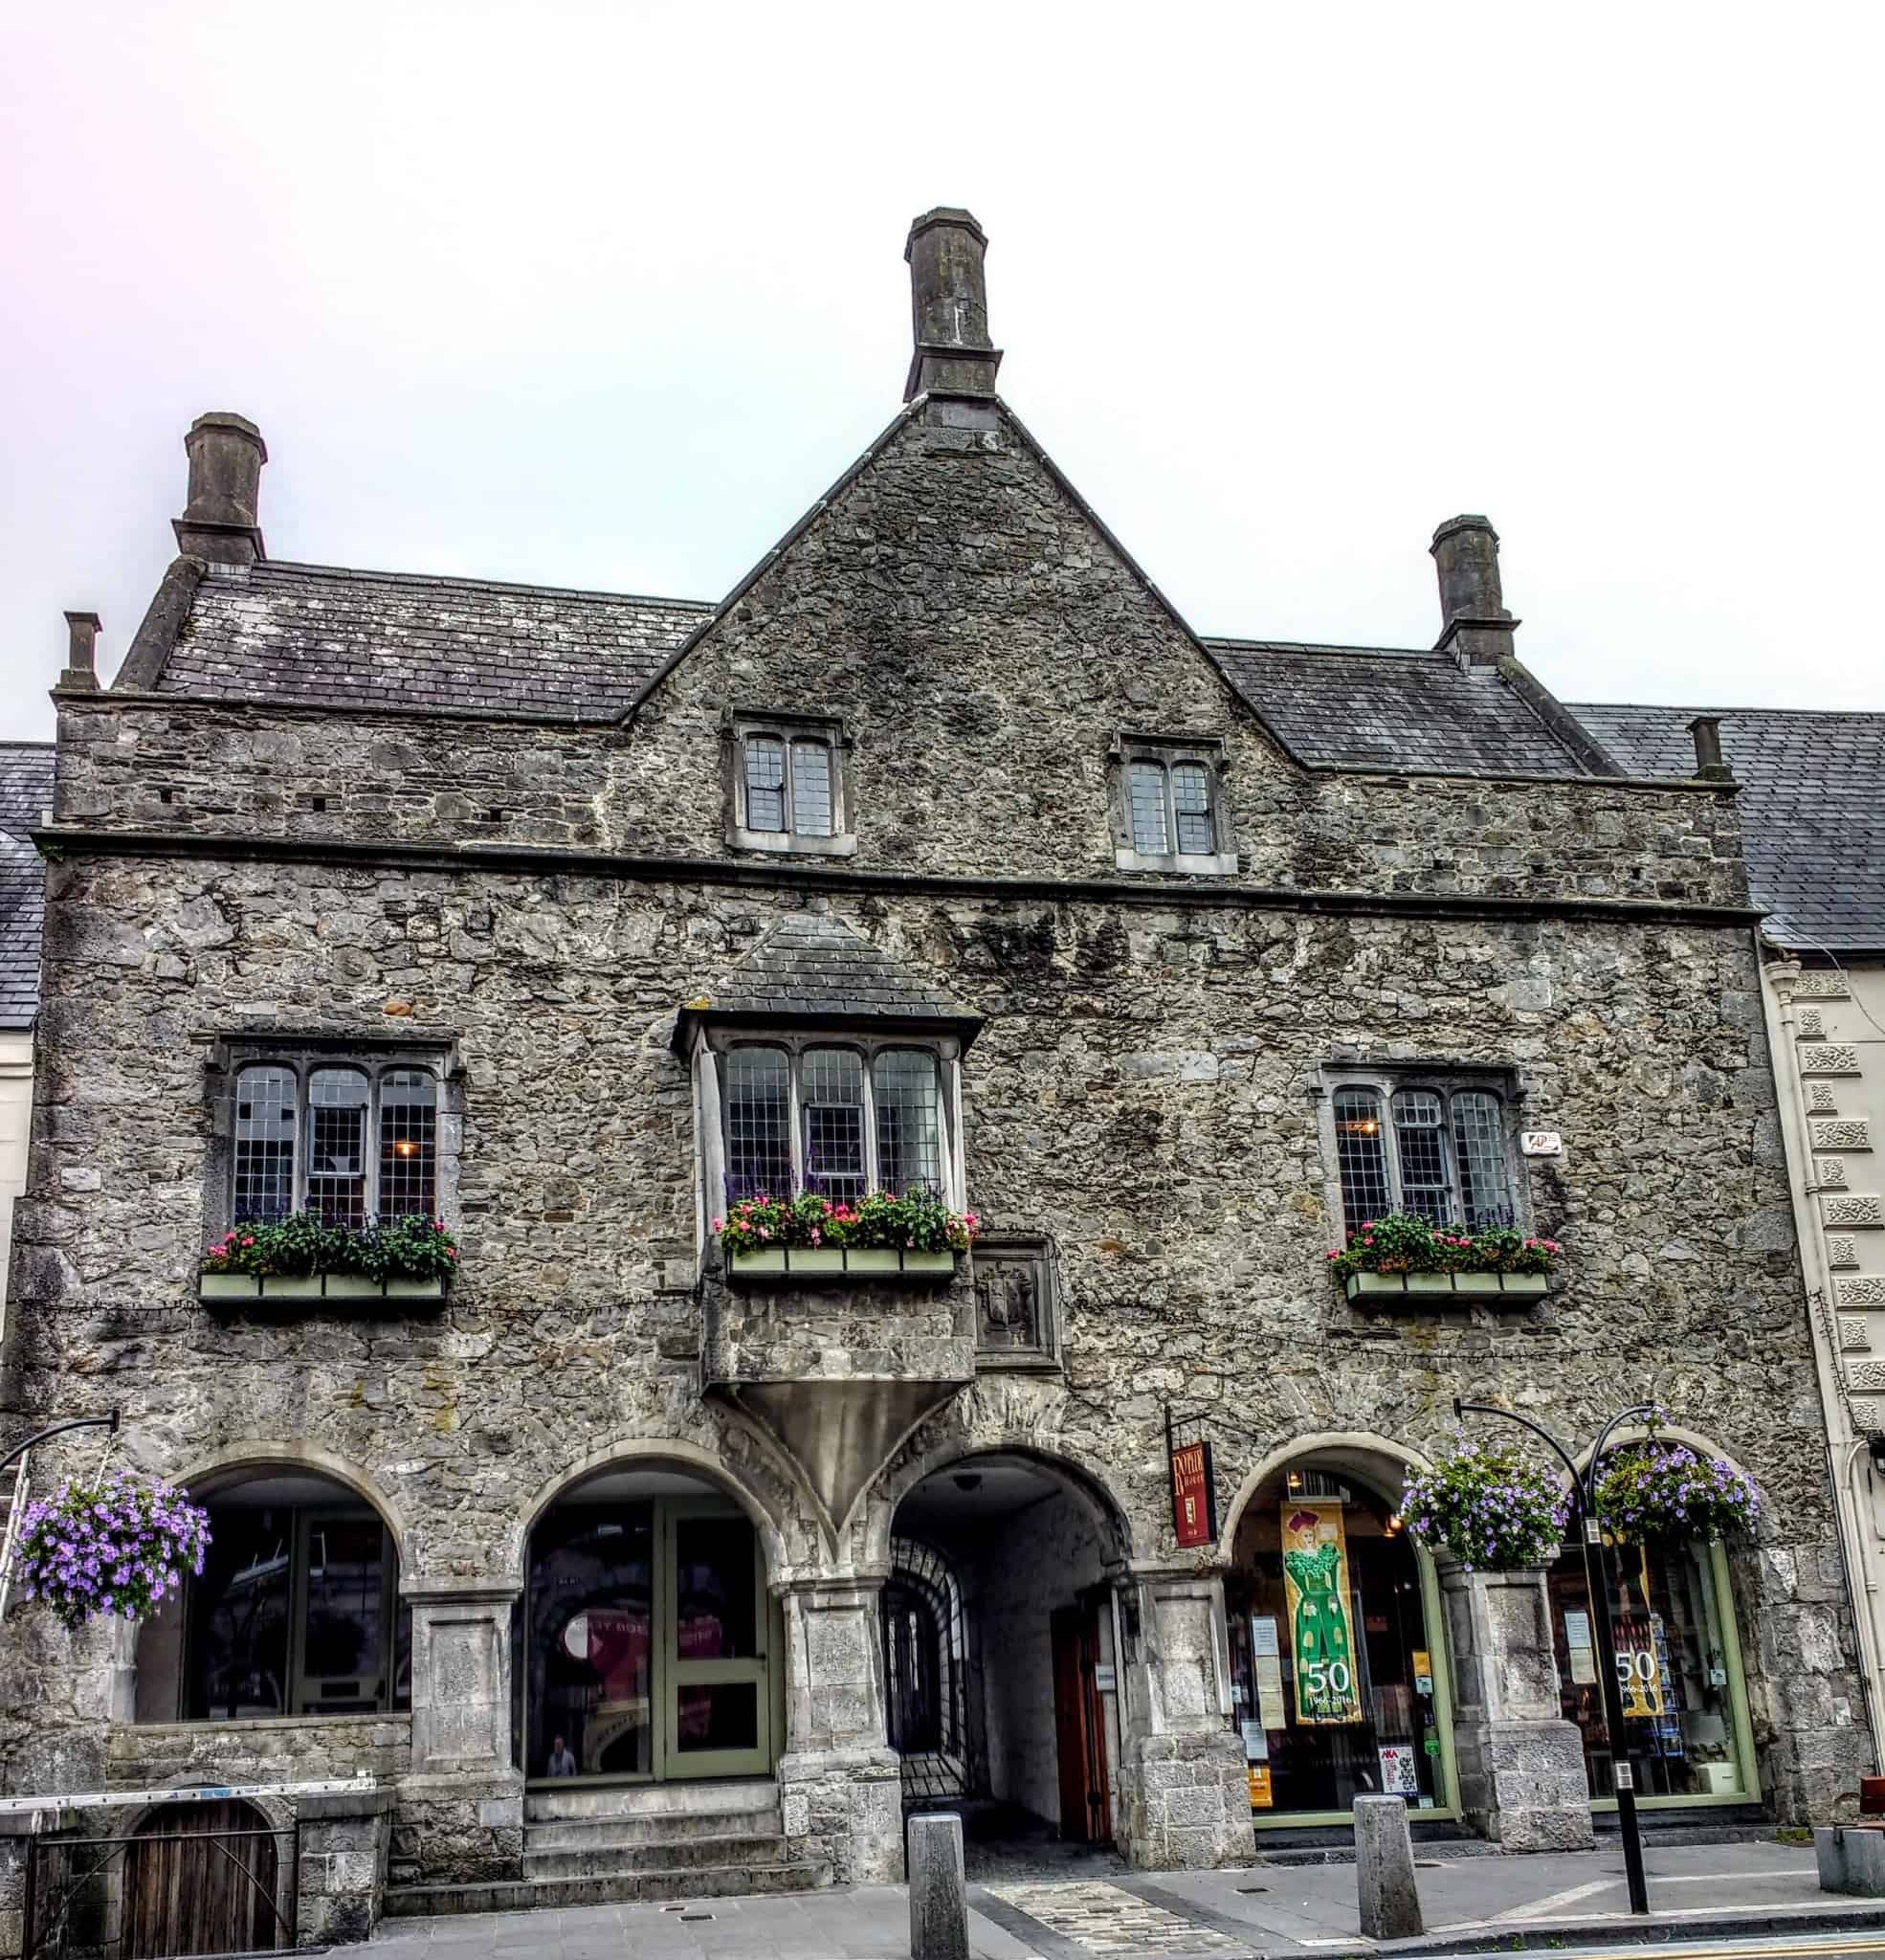 The Ultimate List of awesome things to do in Kilkenny, Ireland